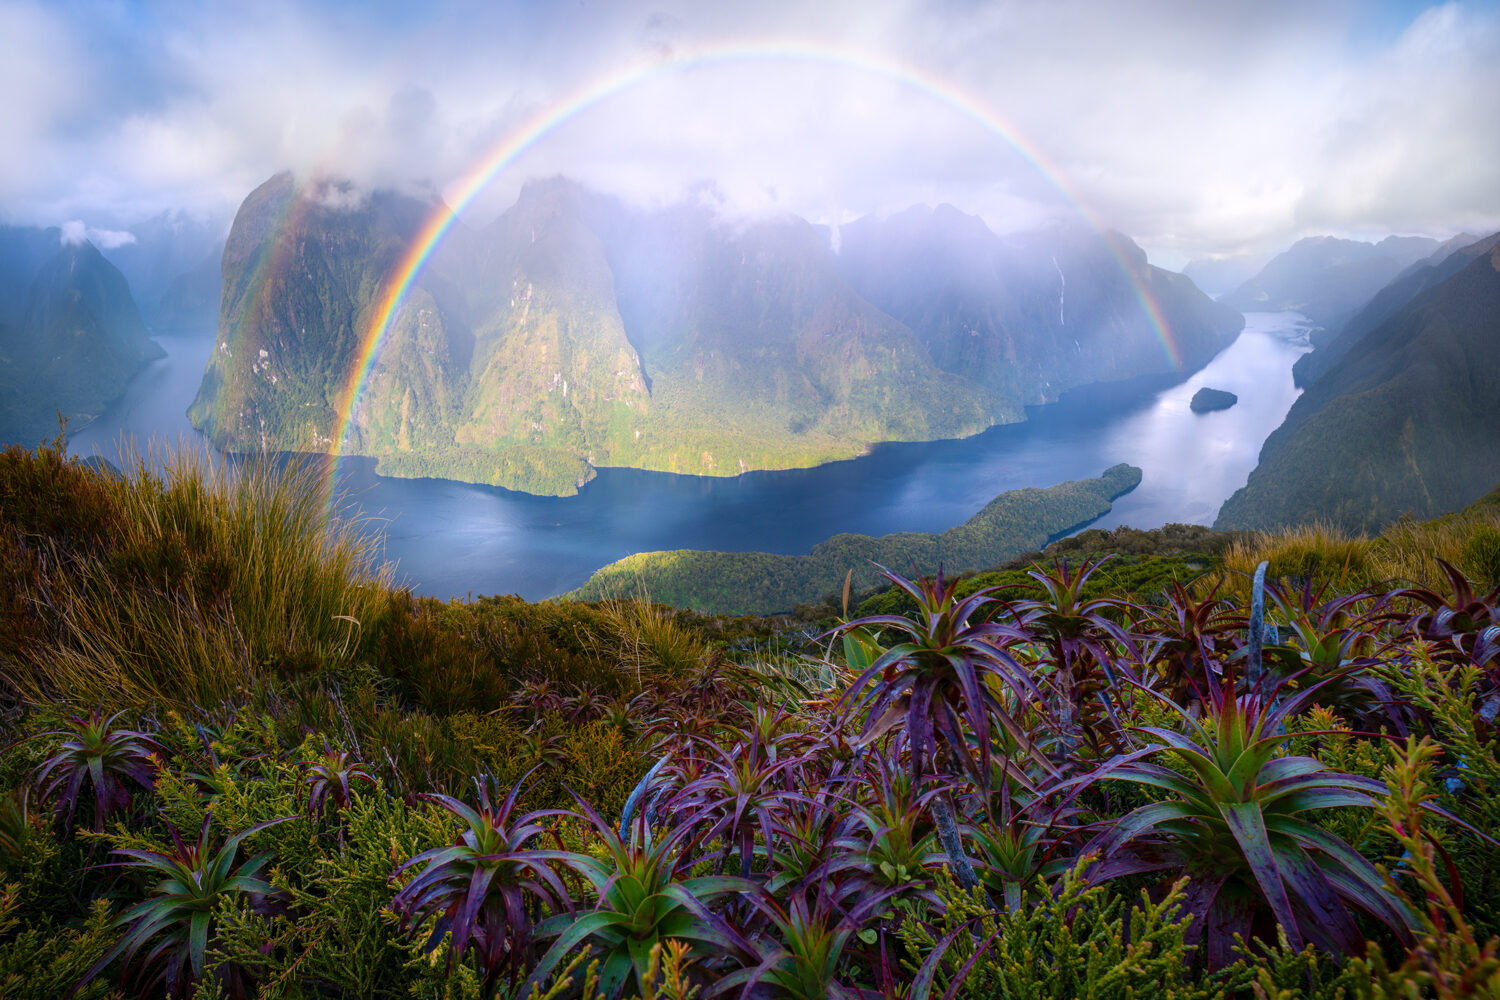 Rainbow spreading across a fiord in New Zealand